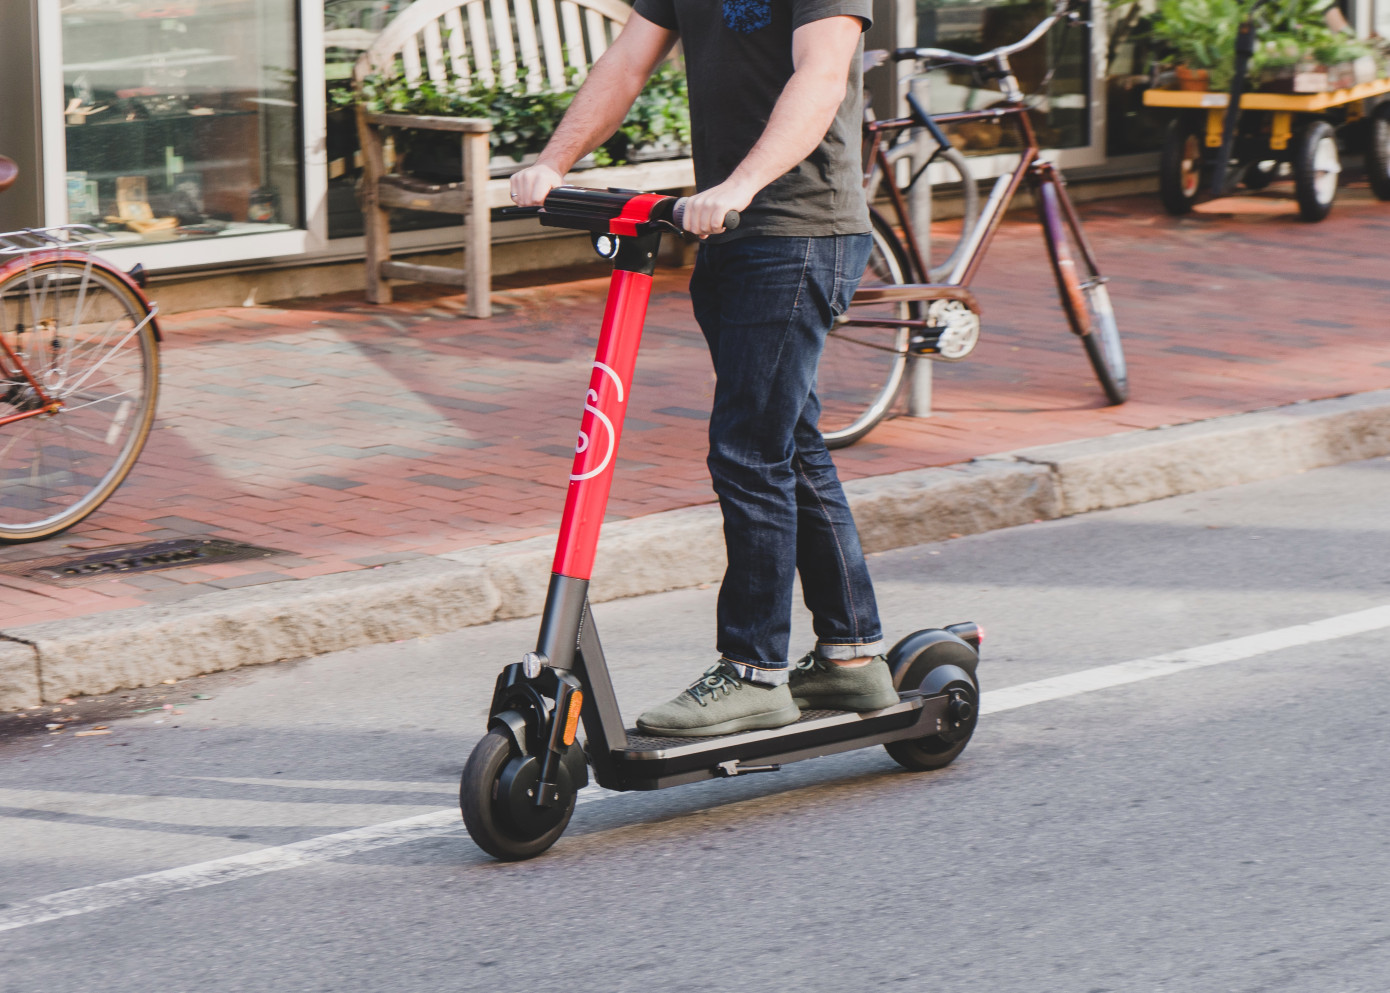 A scooter rider takes an autonomous maintenance scooter for a spin